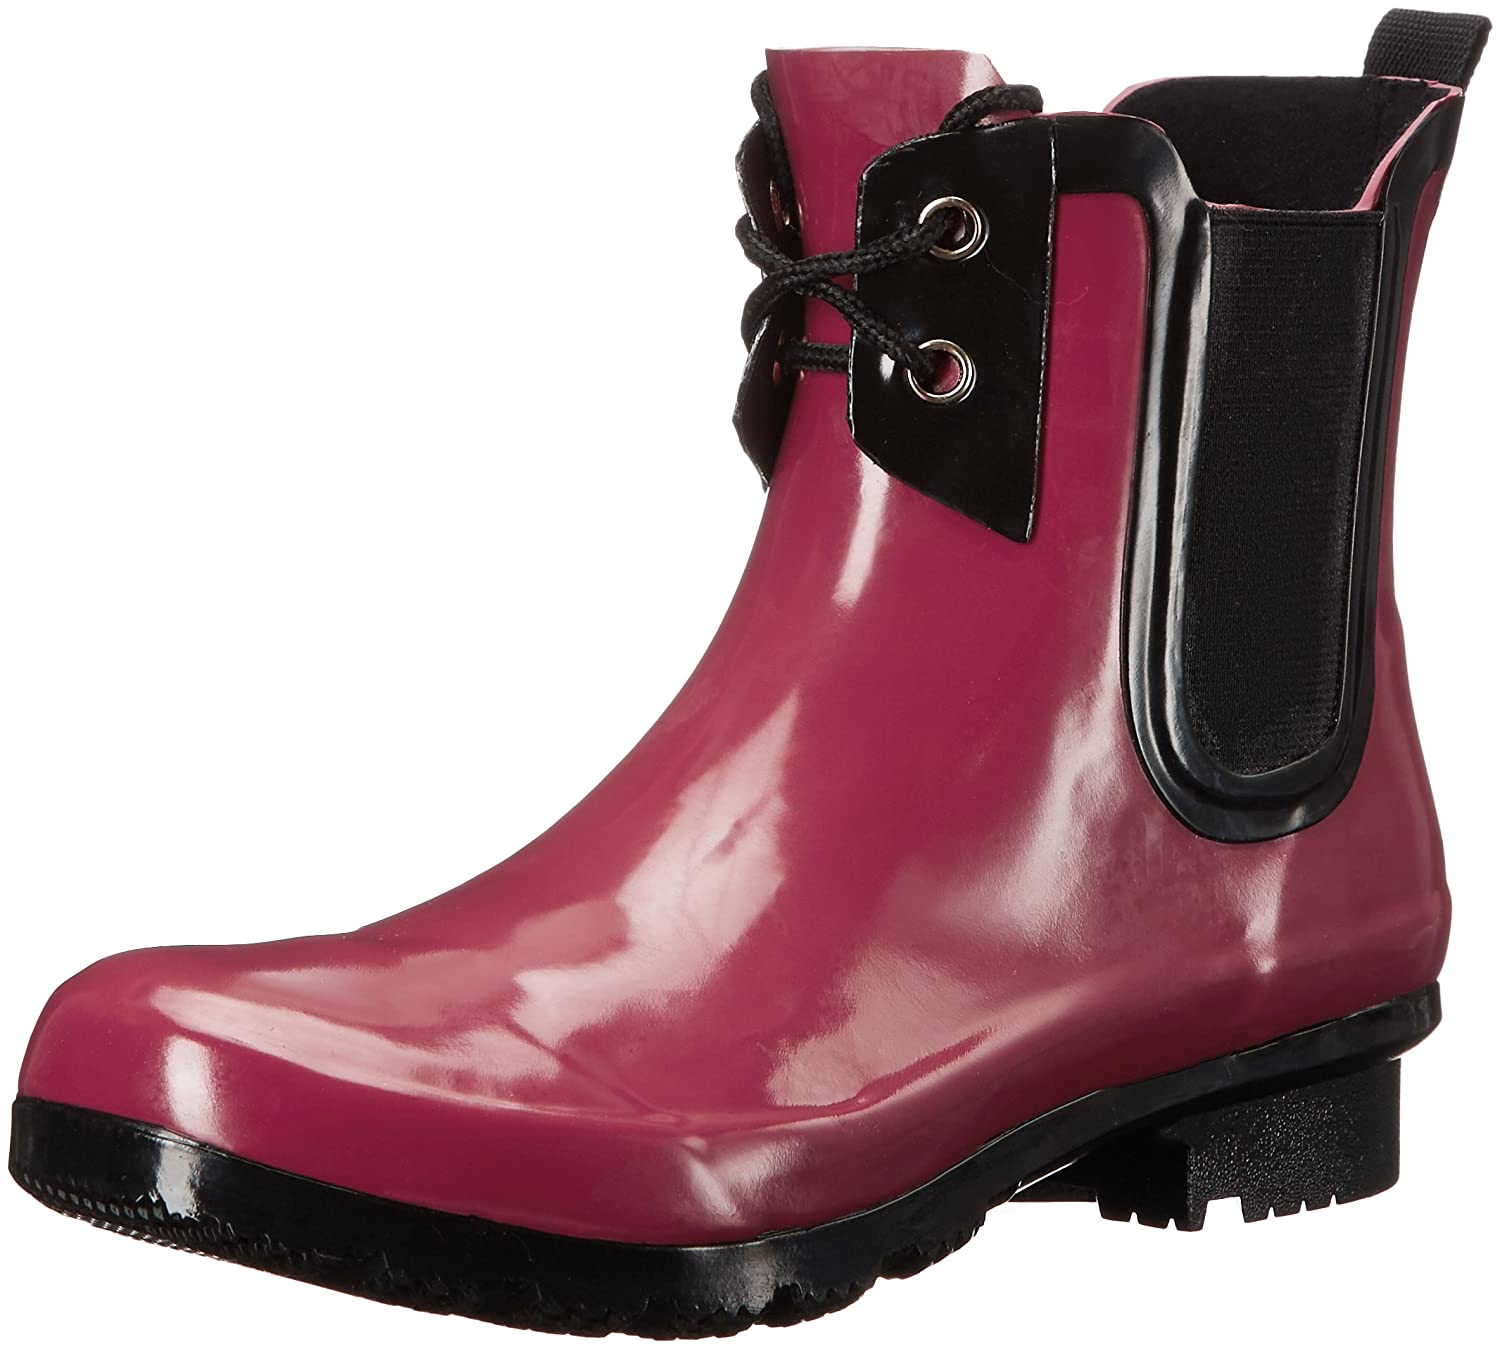 Roma Boots Women's Chelsea Lace-up Rain Boots B01L2WO9CY 11 B(M) US|Claret Lace